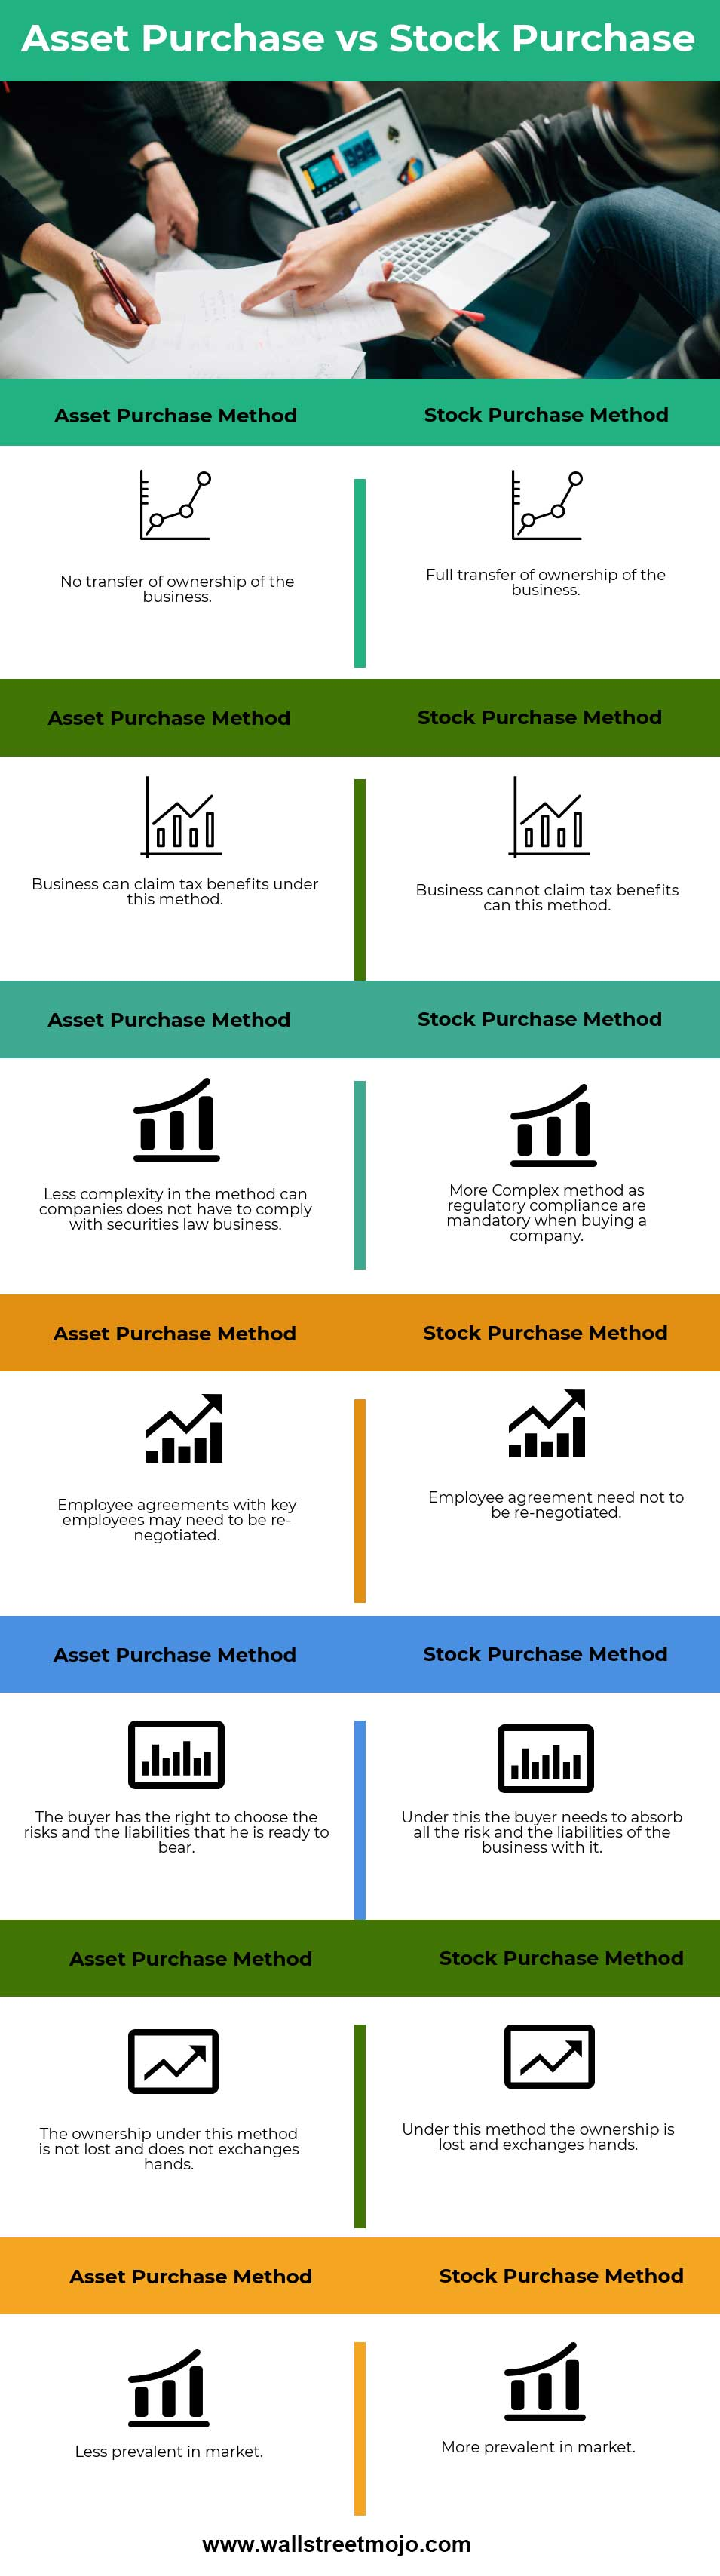 Asset-purchase-vs-stock-purchase